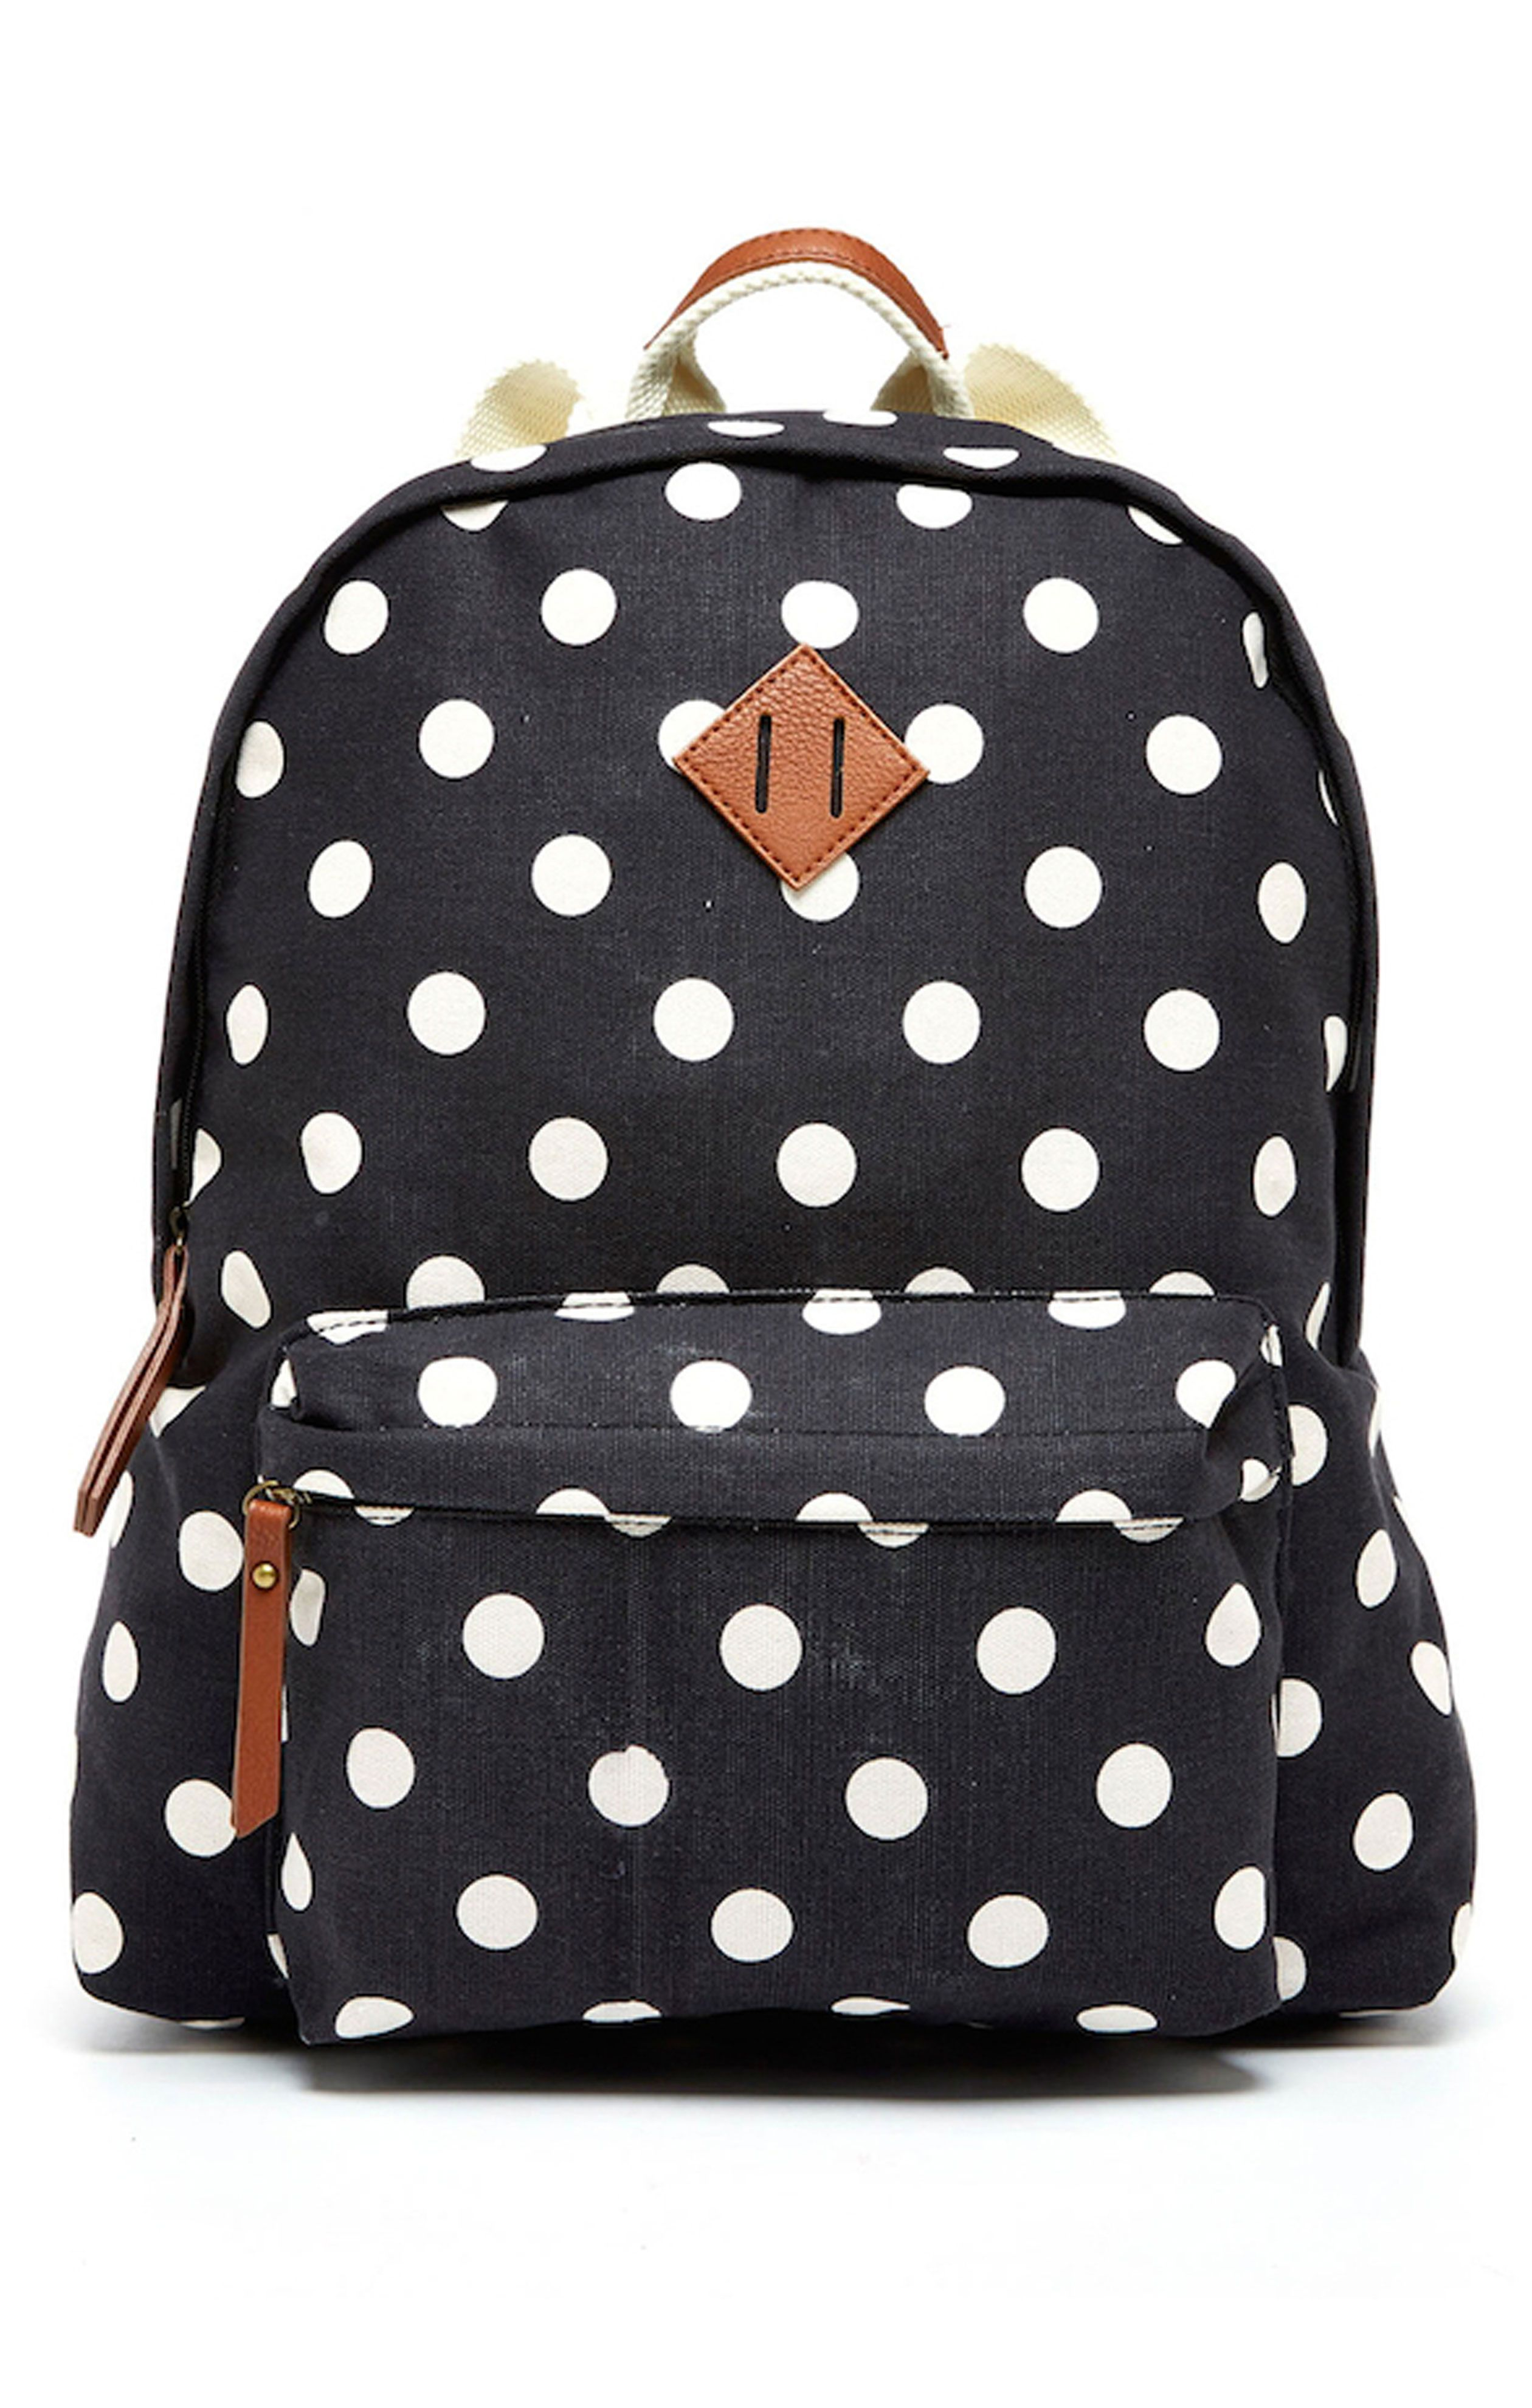 Madden Girl polka-dot backpack | Kids' Corner | Pinterest | Girls ...